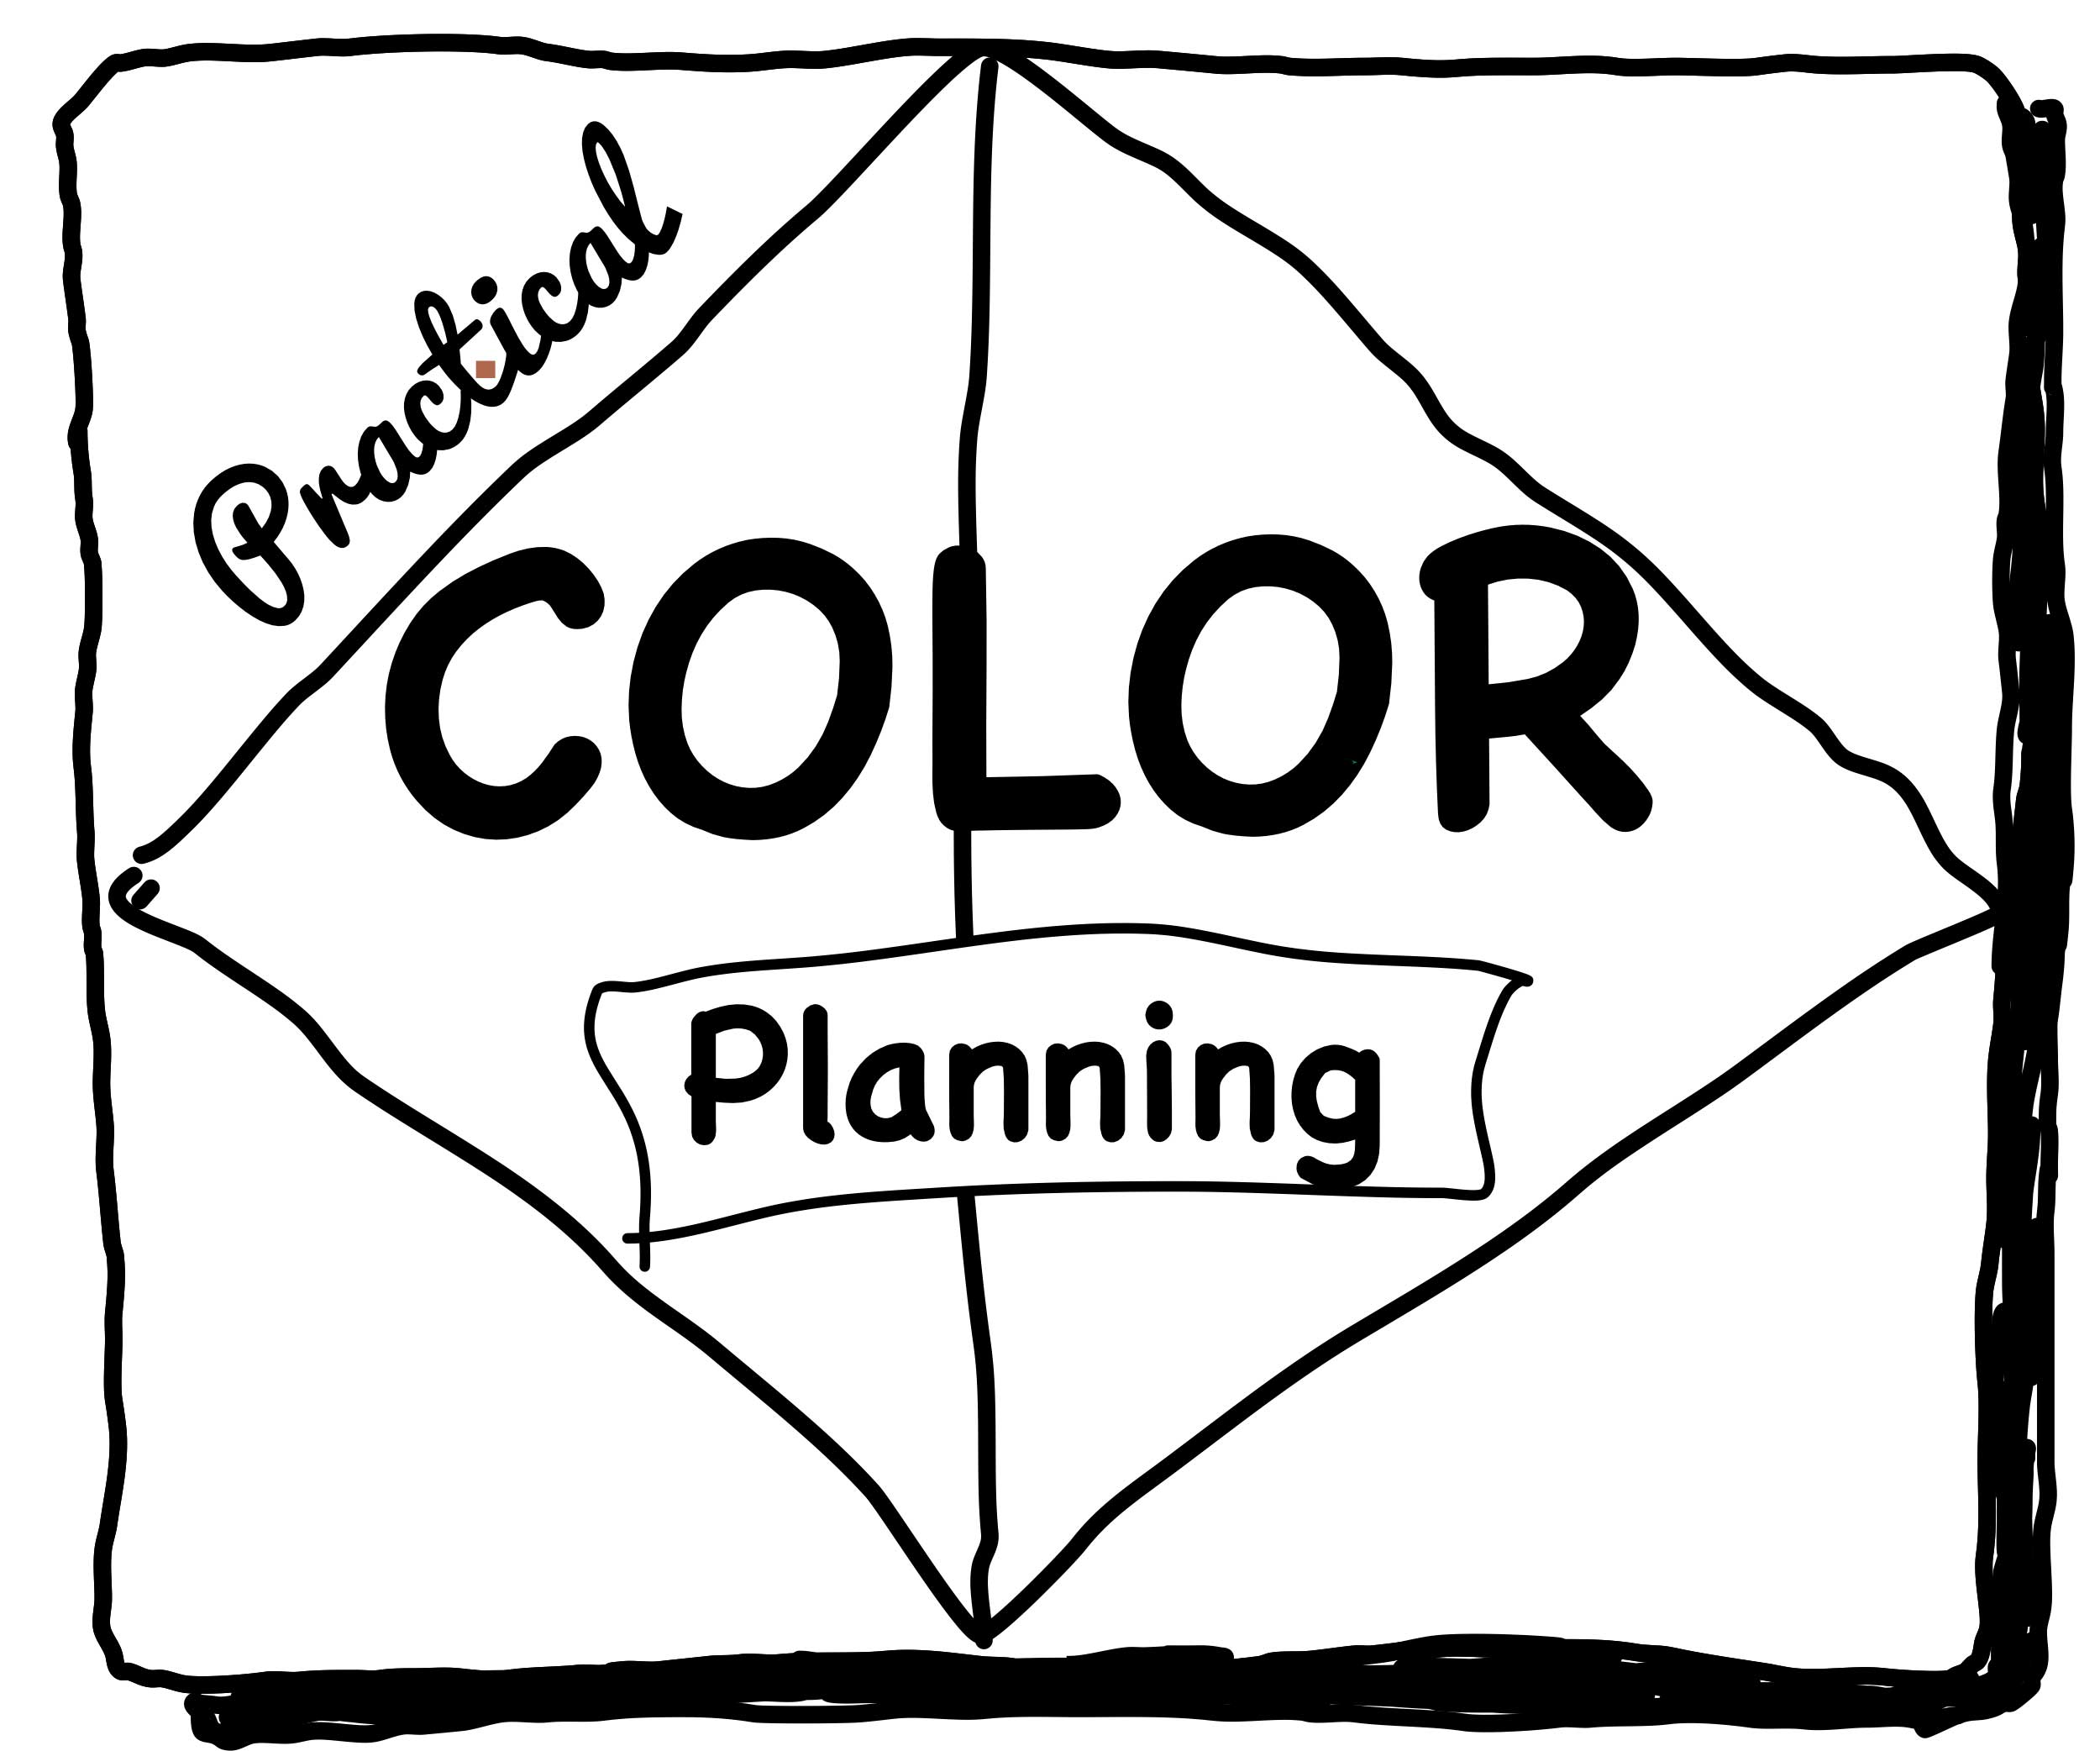 Practical Color Planning